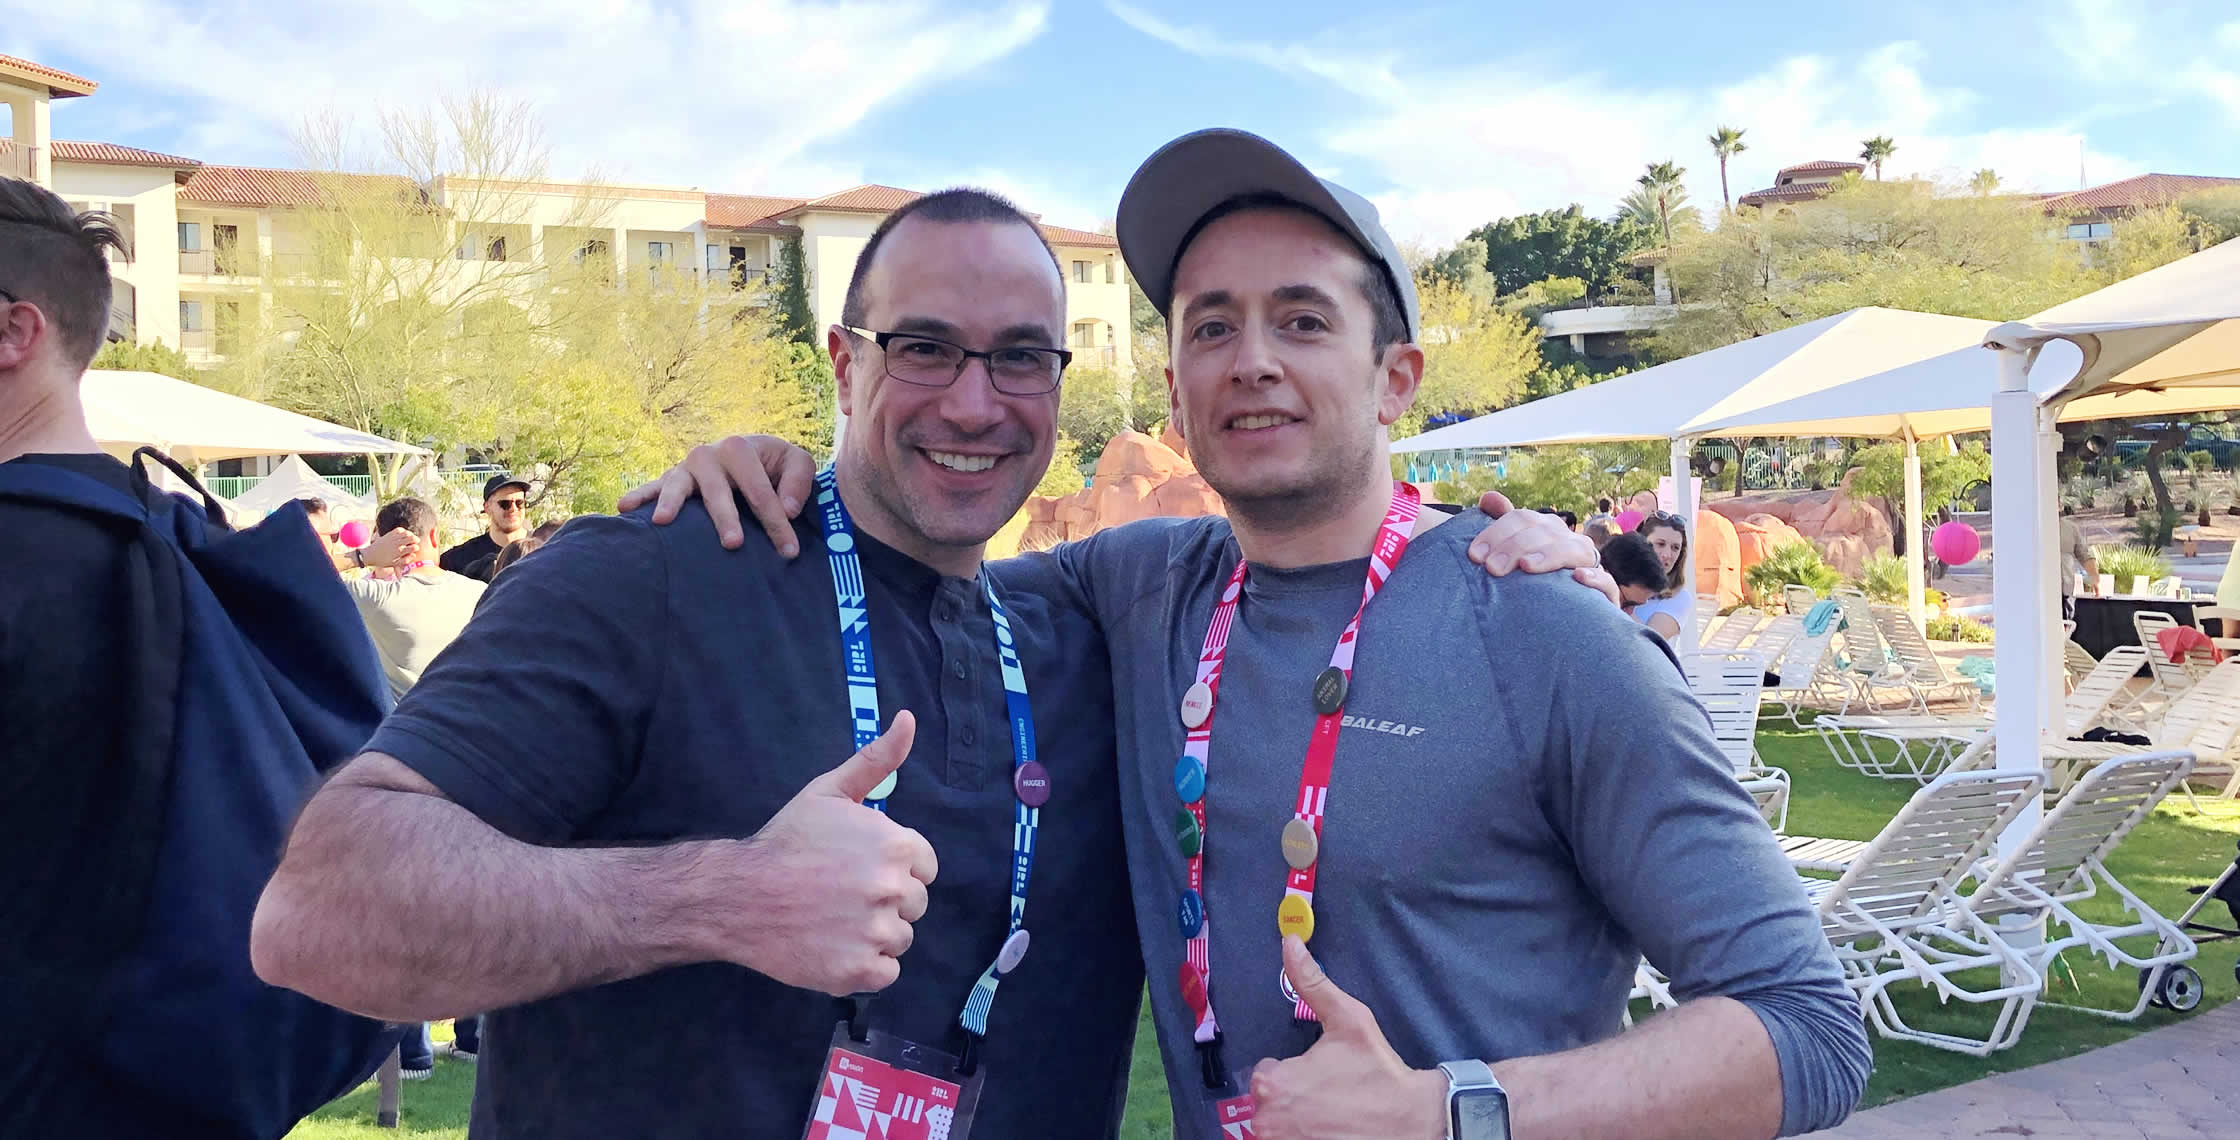 Ben Nadel at InVision In Real Life (IRL) 2019 (Phoenix, AZ) with: Scott Markovits